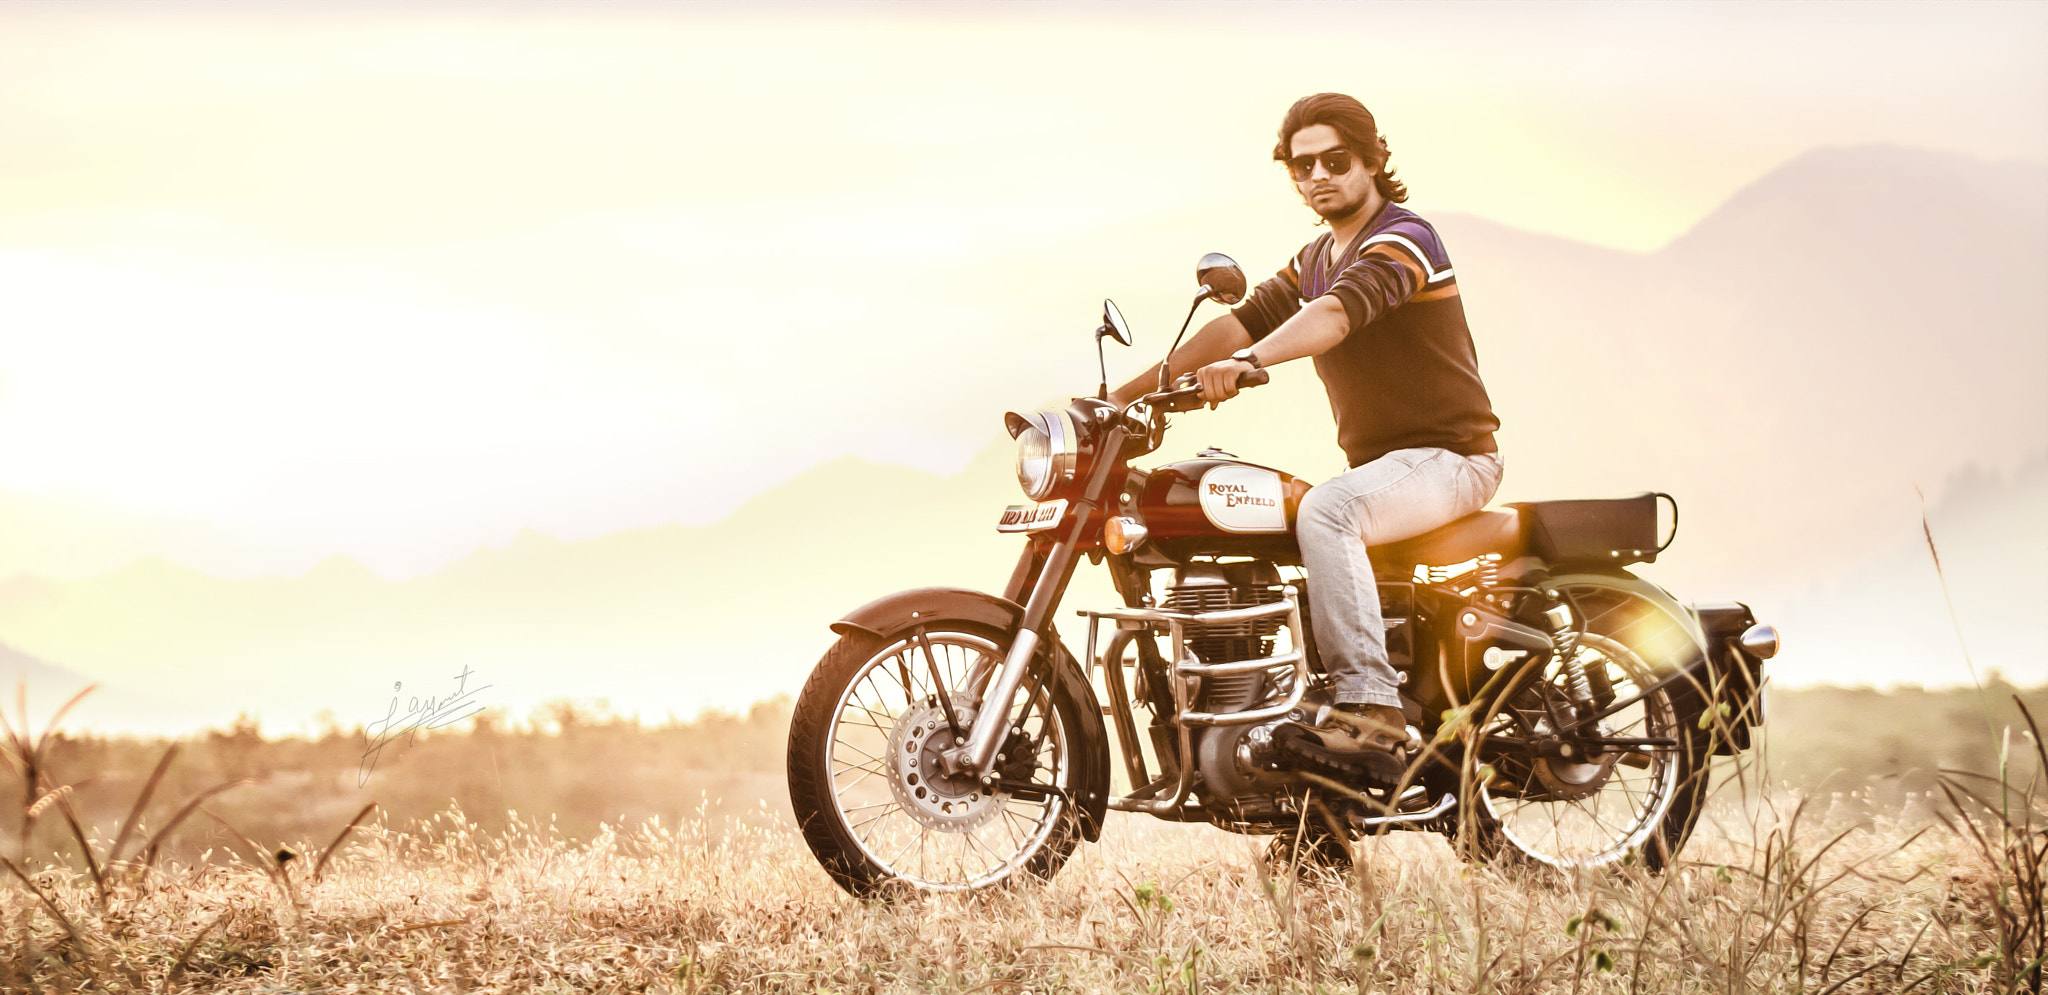 Photograph The BIKER.. by Jayant Khandelwal on 500px